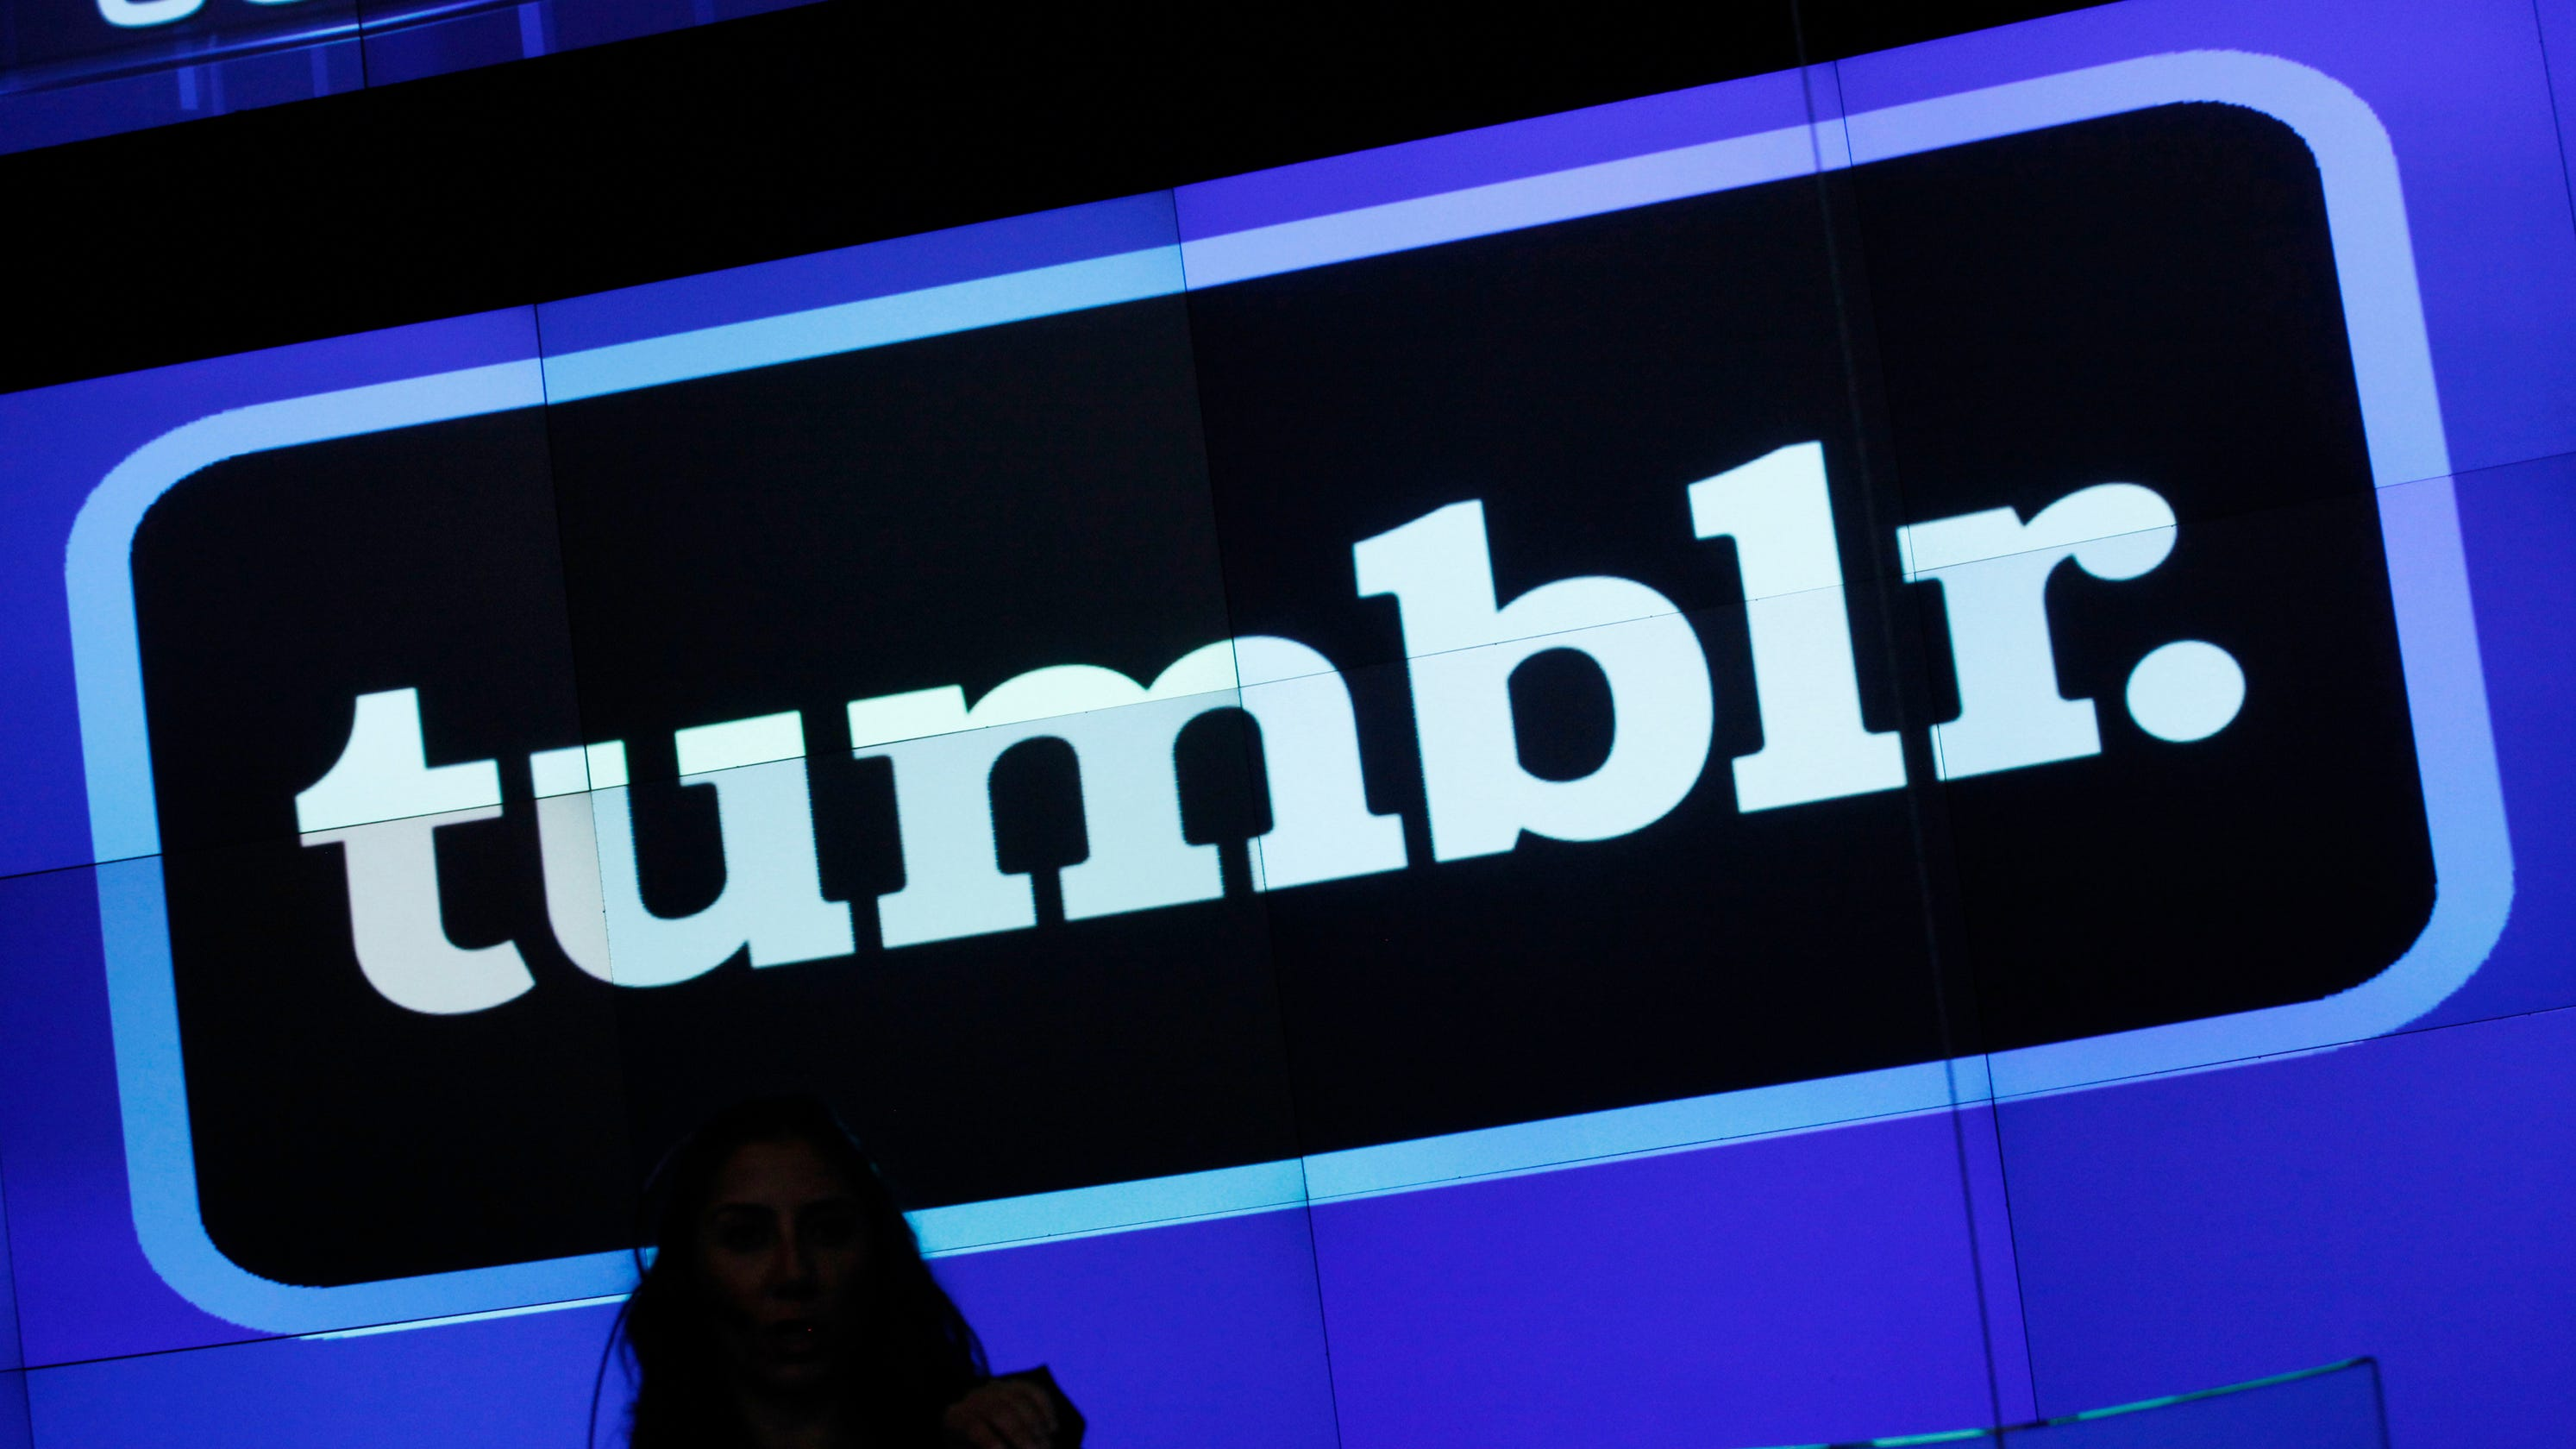 Tumblr to ban all adult content beginning Dec. 17, and some users are fuming